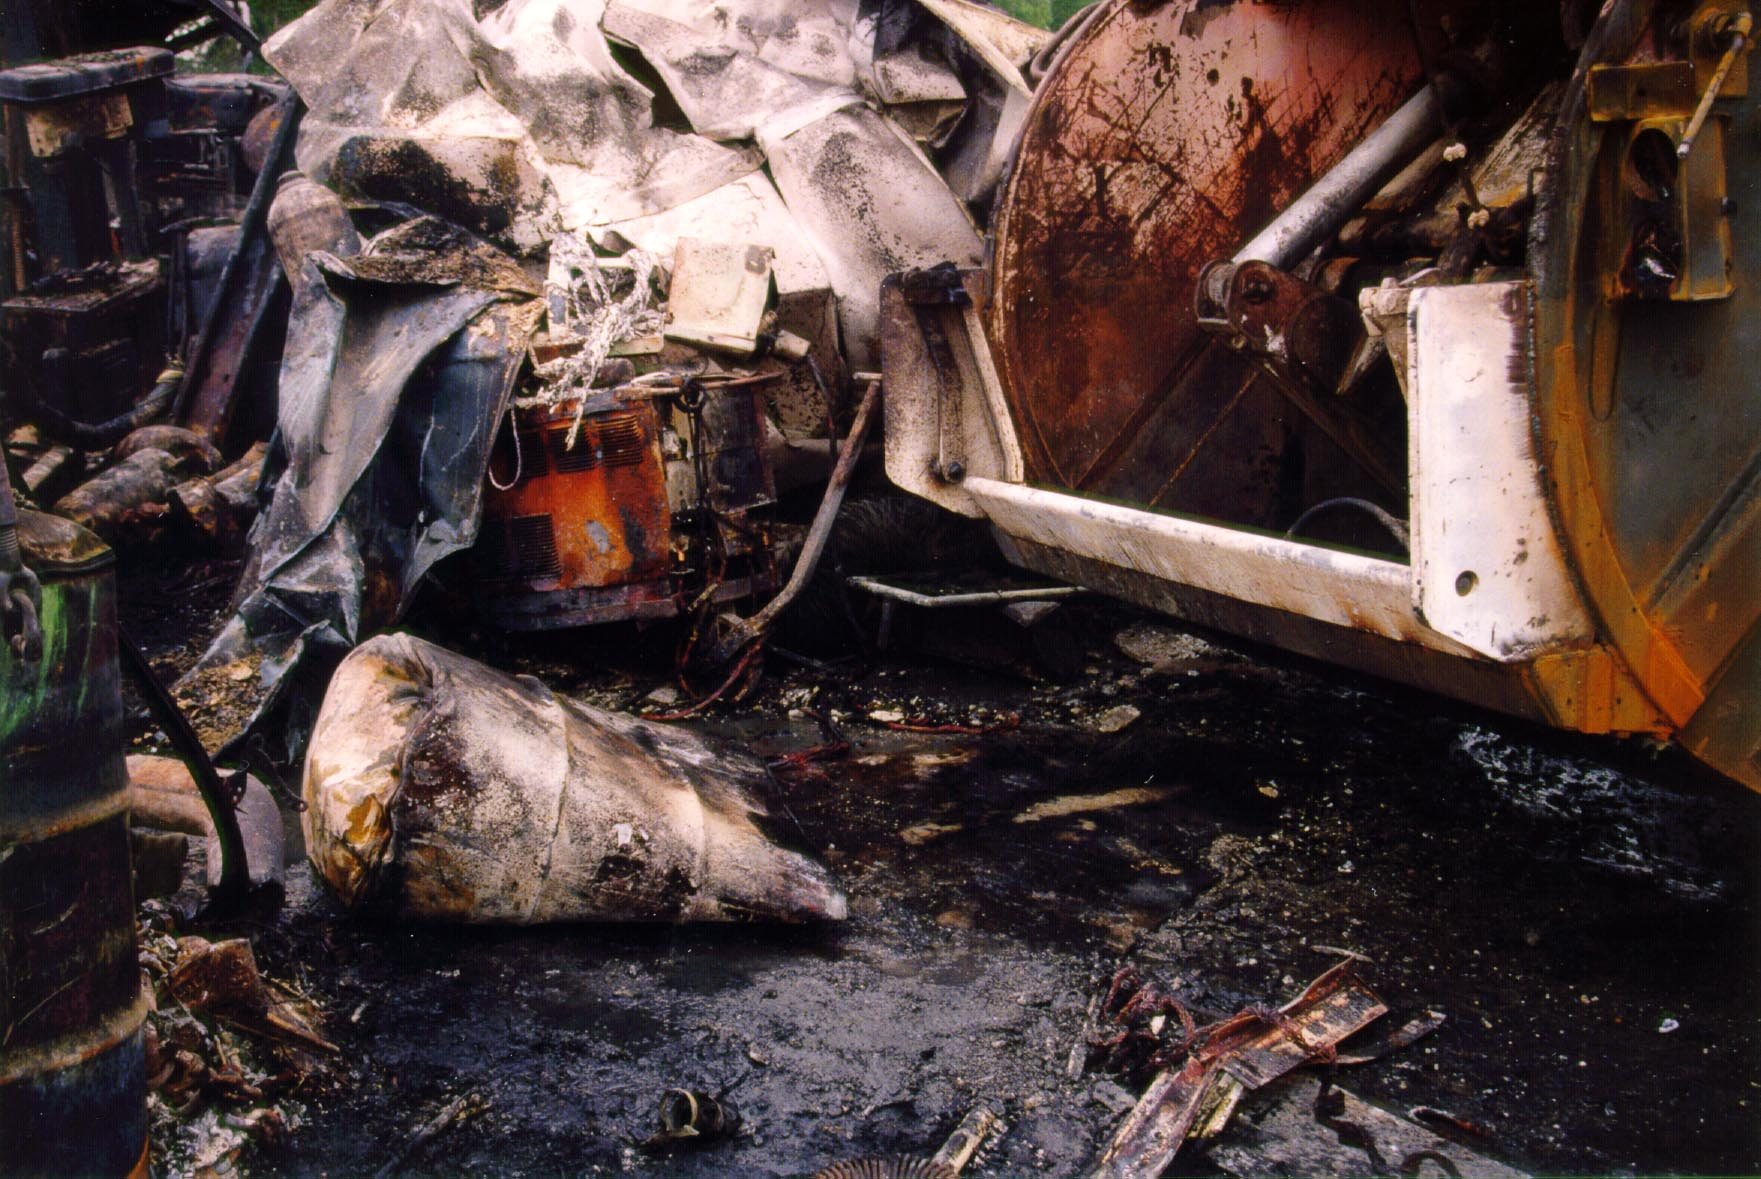 explosion welding Accident: packaging corporation storage tank explosion  the workers were on a catwalk above the tank and performing hot work (welding) at the time of the explosion.